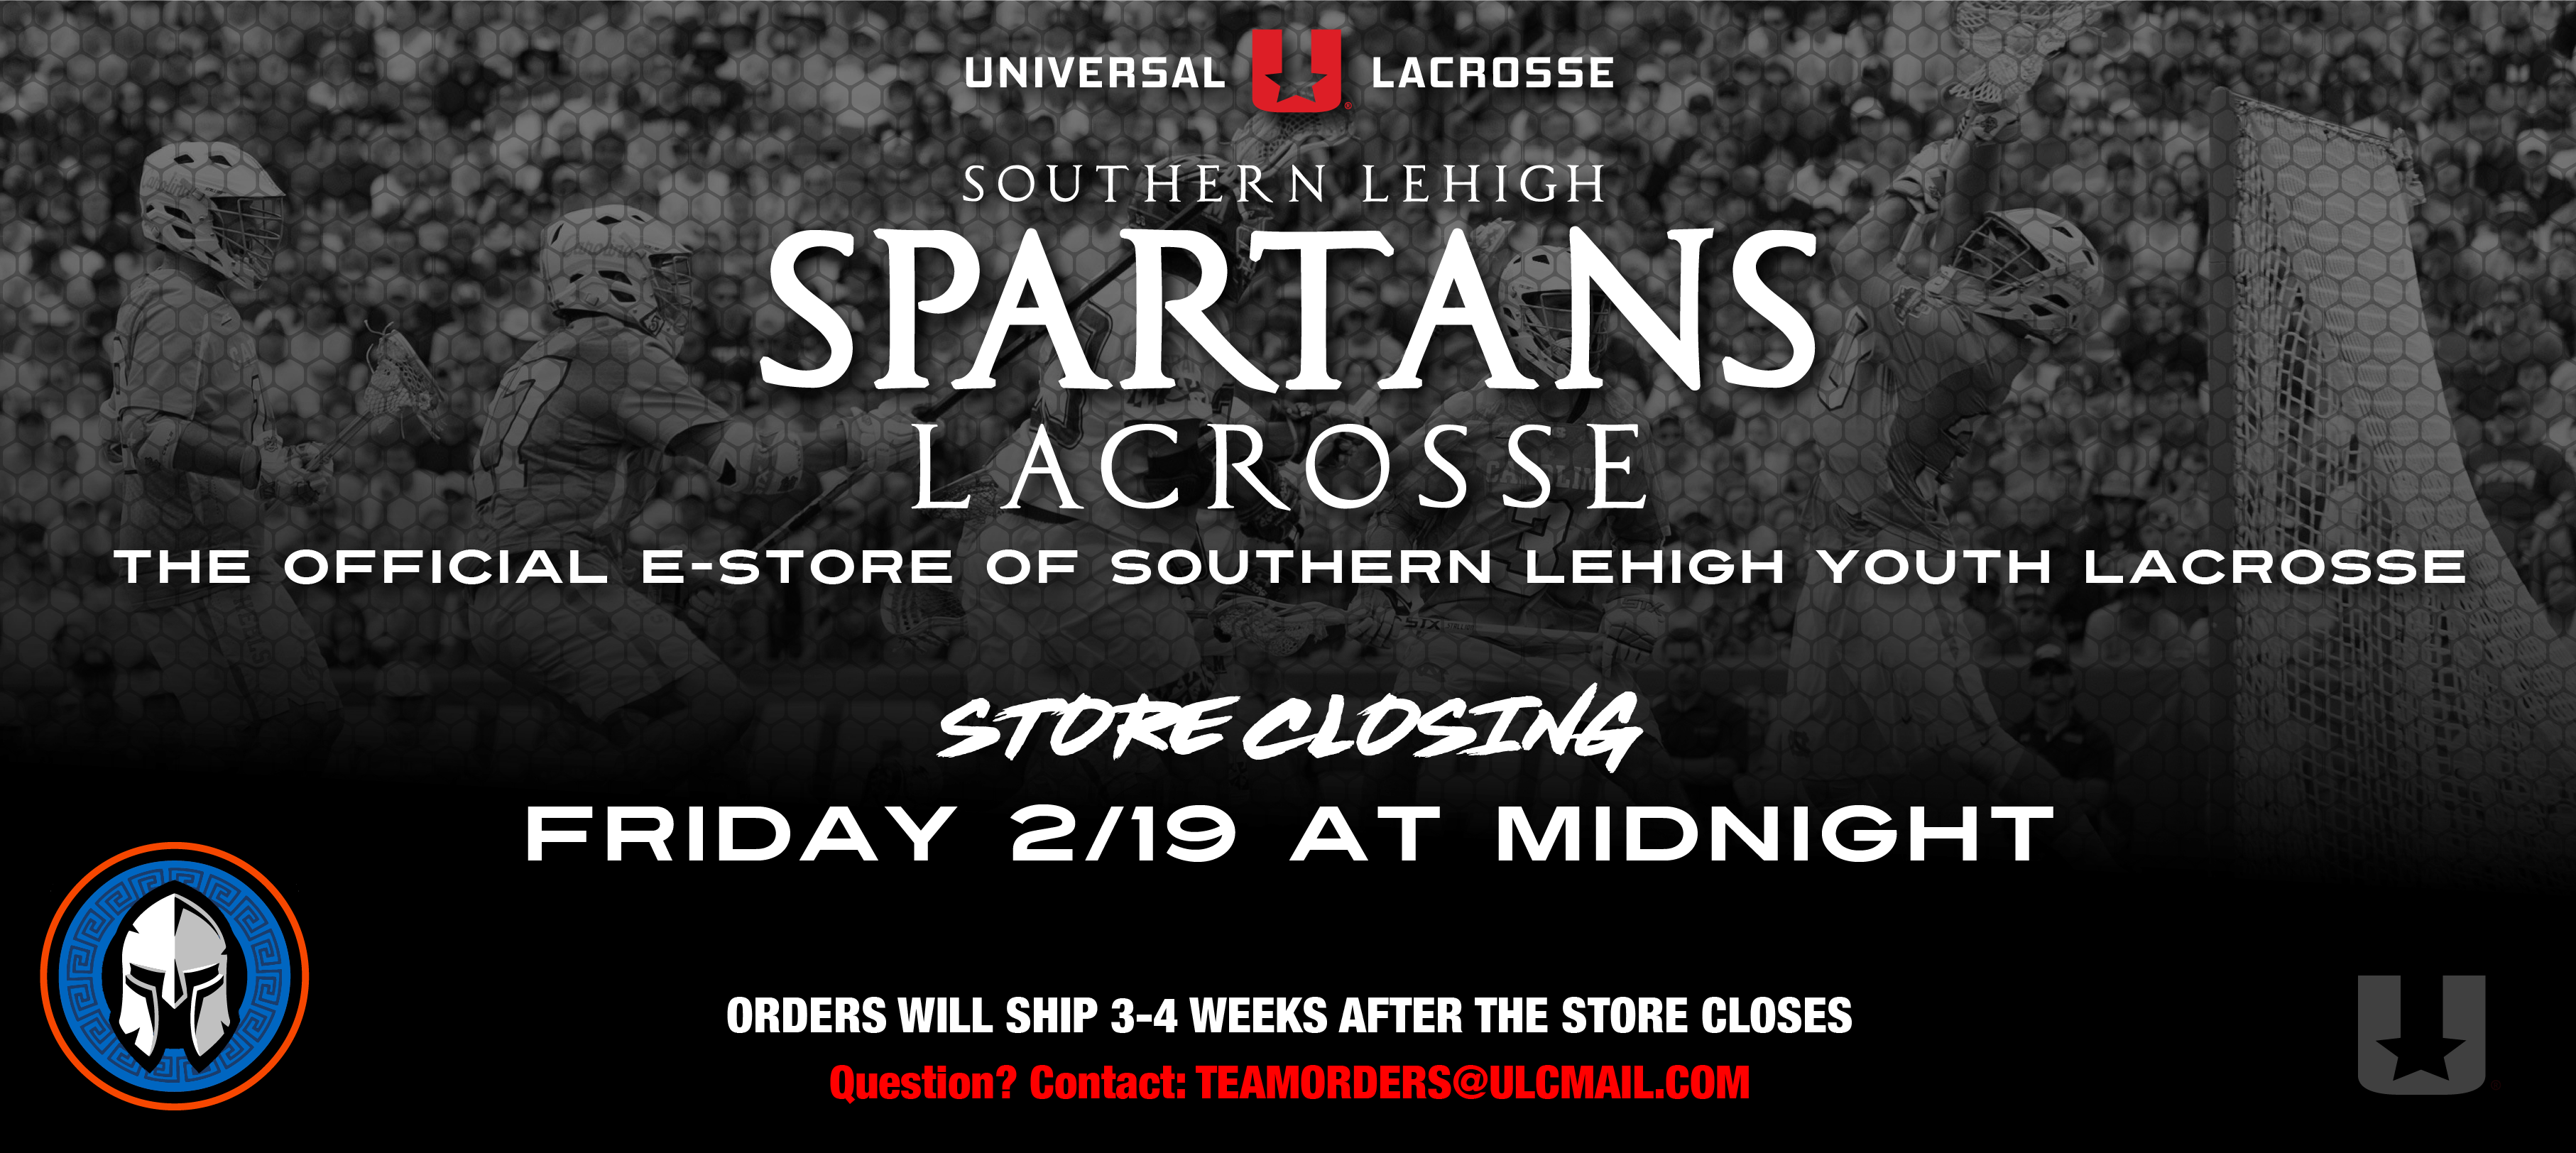 Southern Lehigh Youth Lacrosse